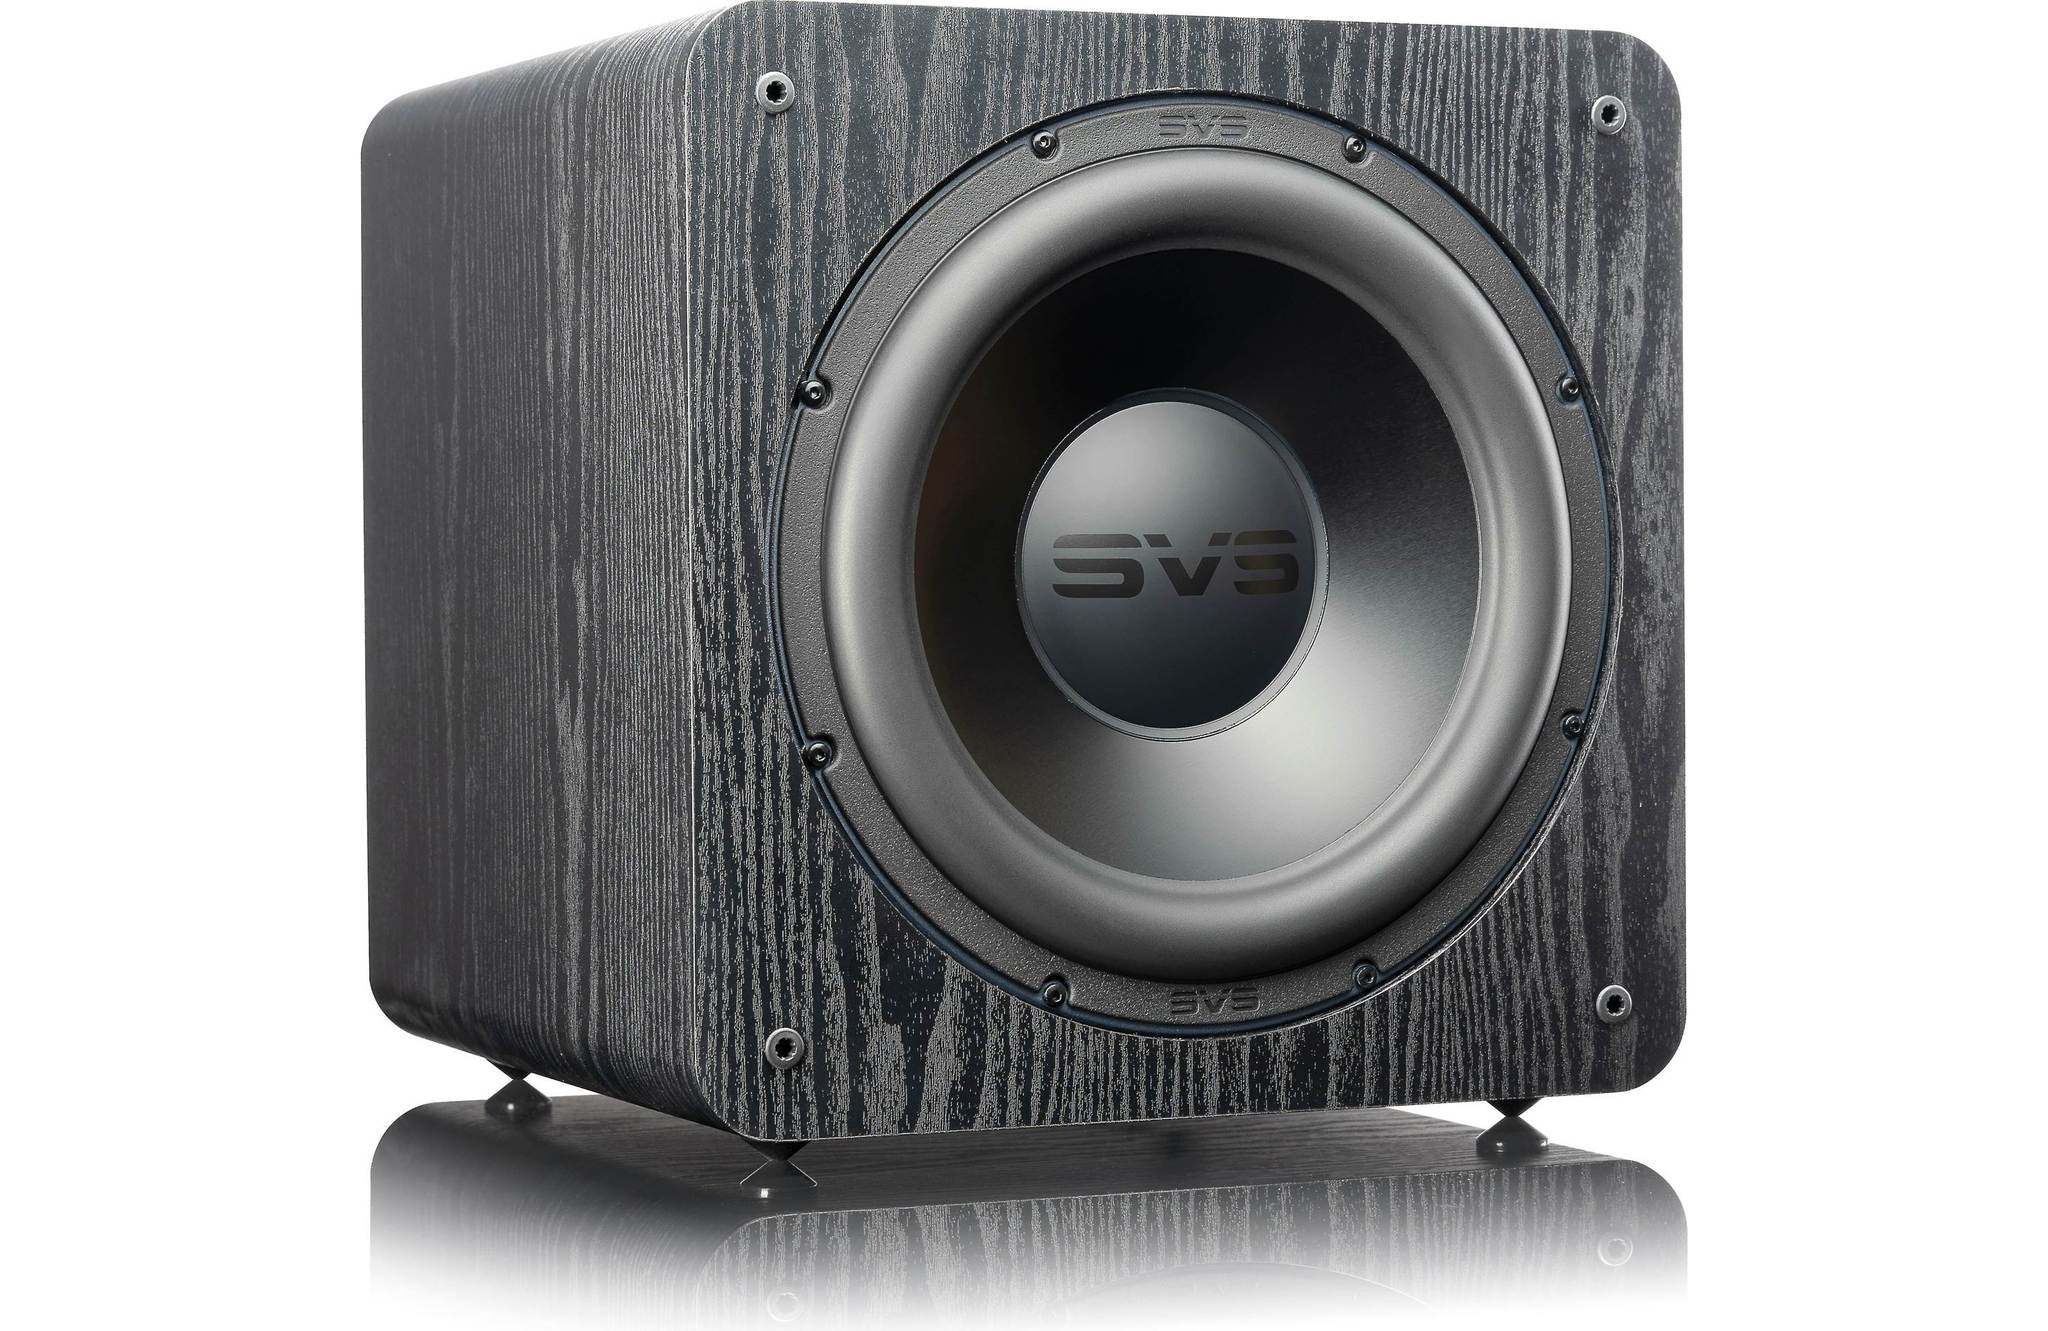 SVS SB-2000 Pro Powered subwoofer with app control (Black Ash) - OPEN BOX (LIKE NEW)